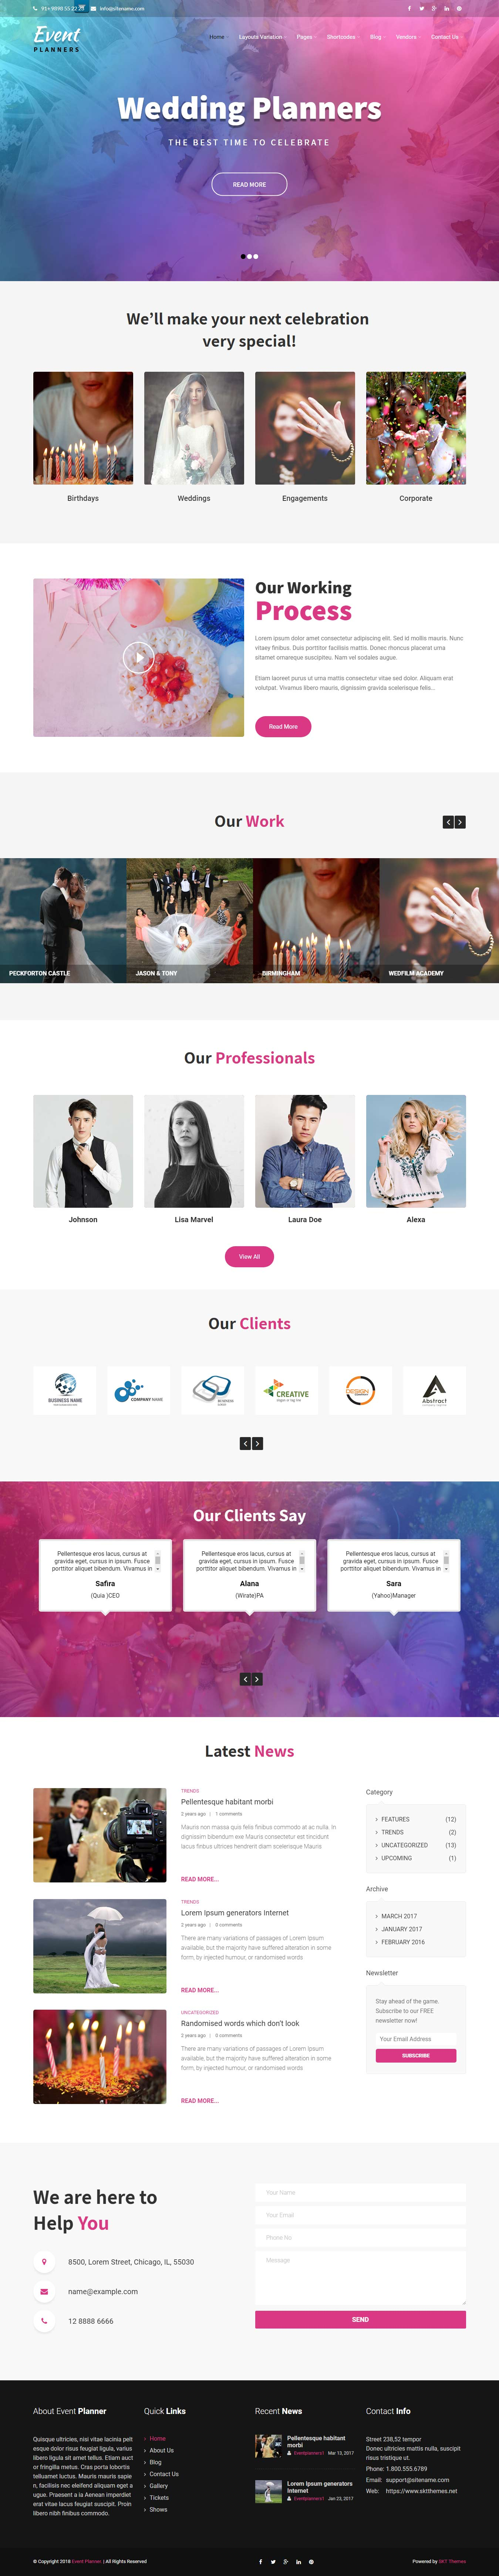 event planners best free event wordpress theme - 10+ Best Free Event WordPress Themes